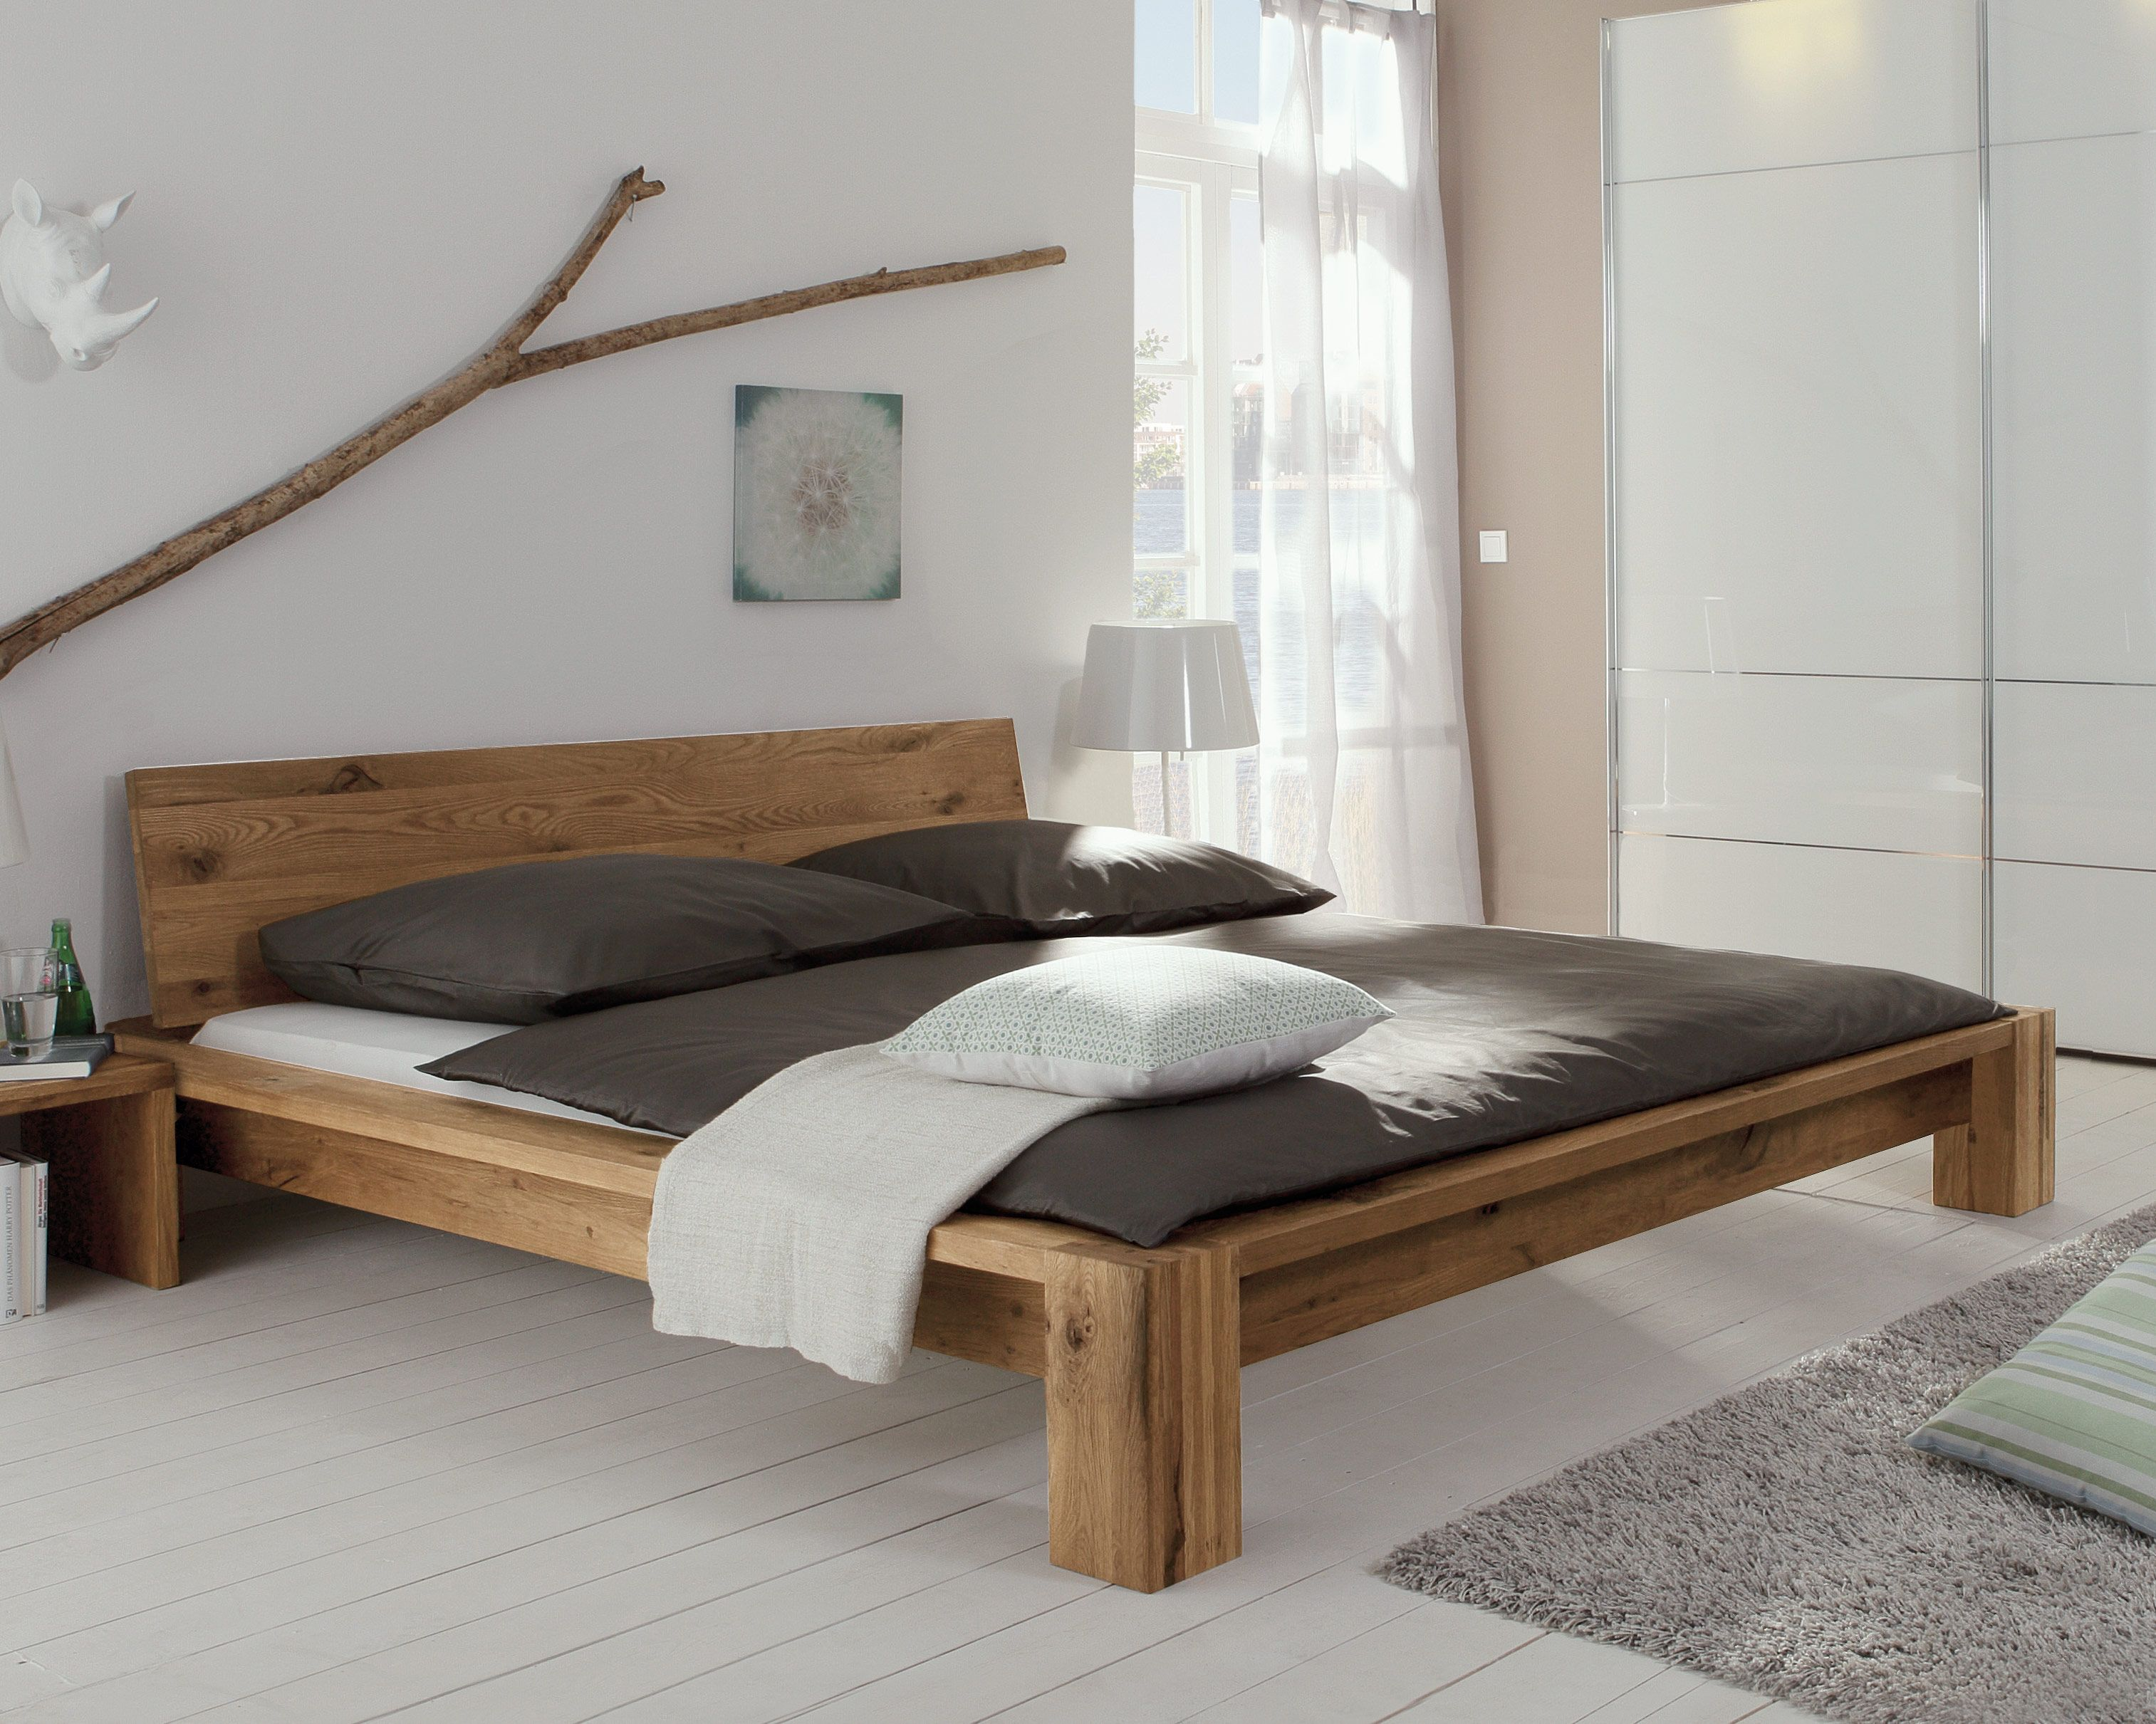 Bett perugia bedrooms interiors and platform beds for Schlafzimmer bett 180x200